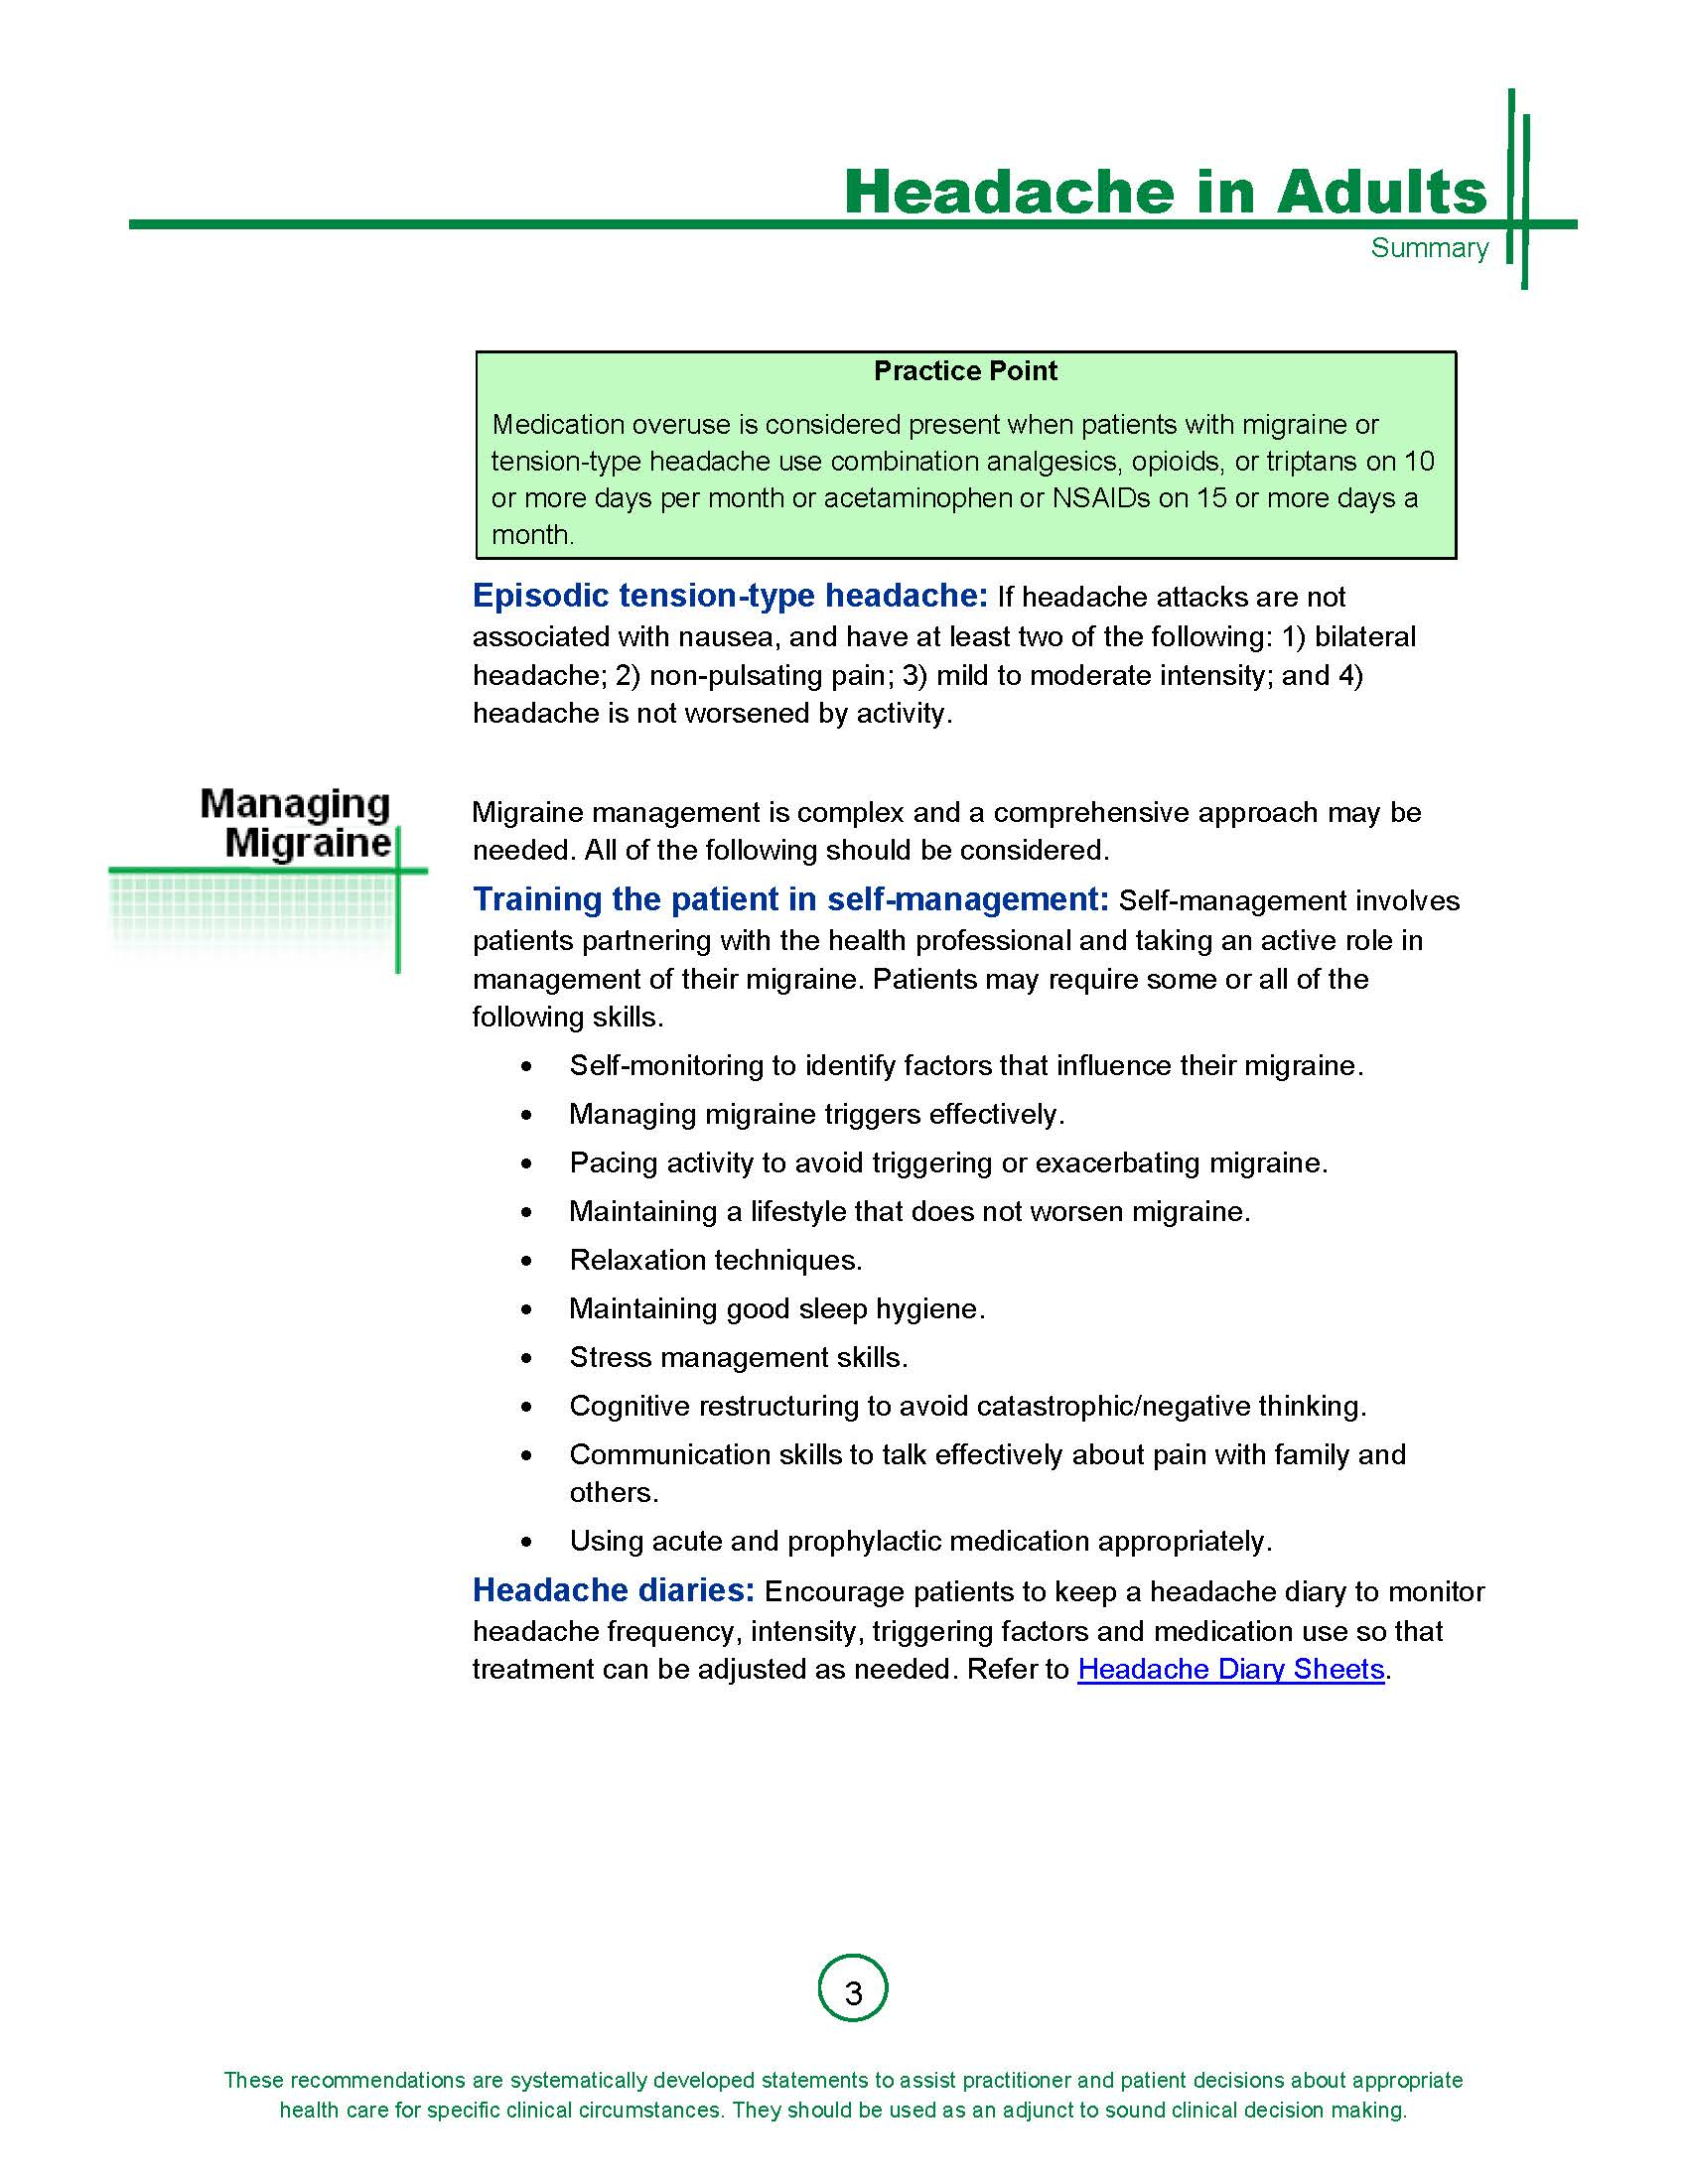 Summary Guideline for Management of Primary Headache in Adults_Page_3.jpg